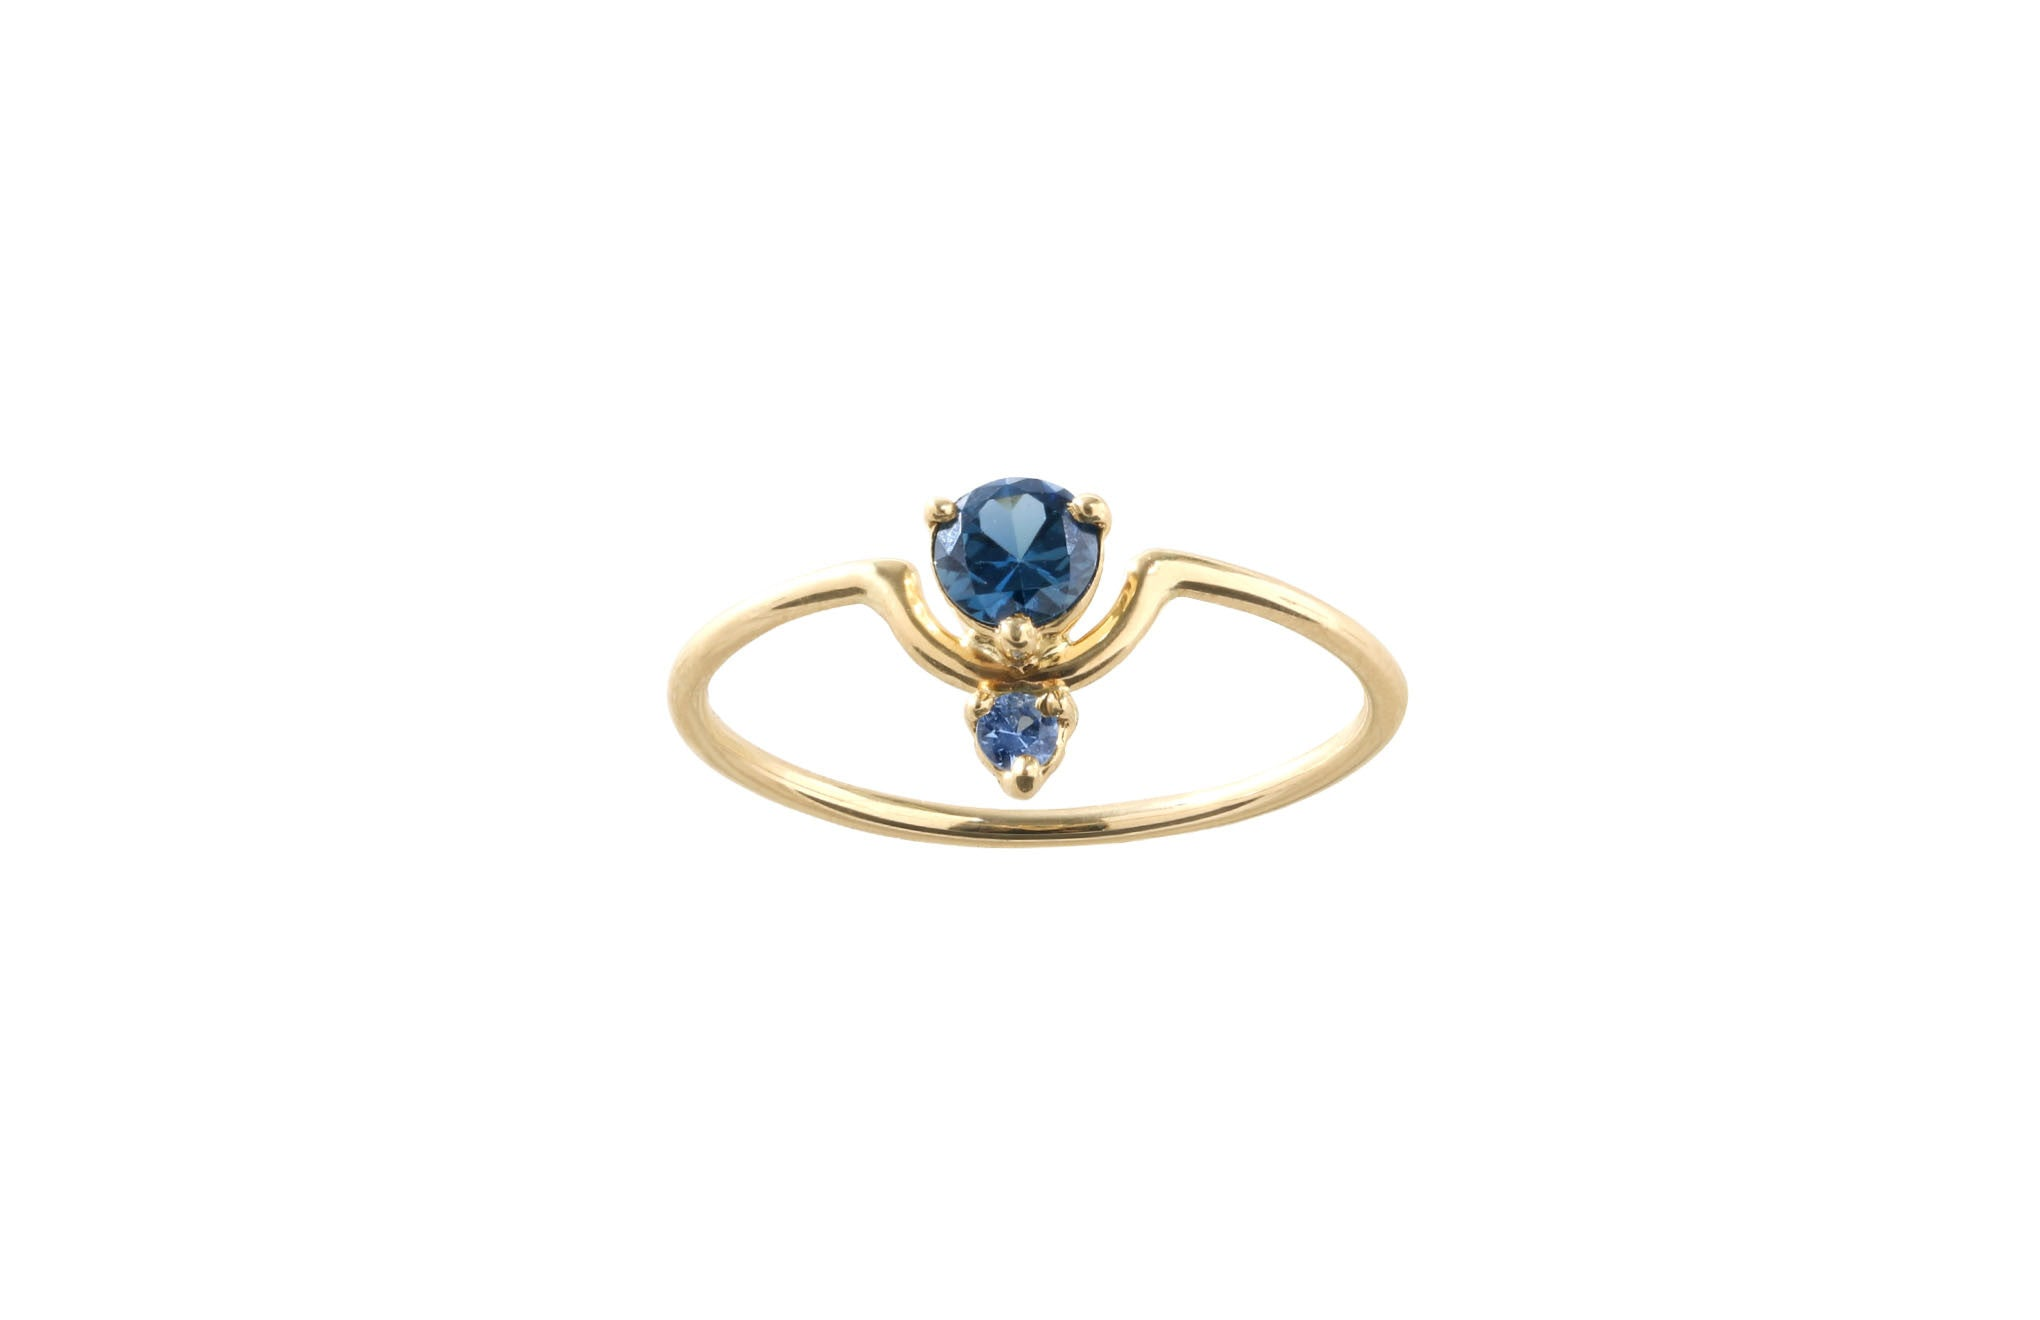 gold stone prong shop wedding ring pave render emitter white light floor aqua sapphire blue round metal with in square ctw accents